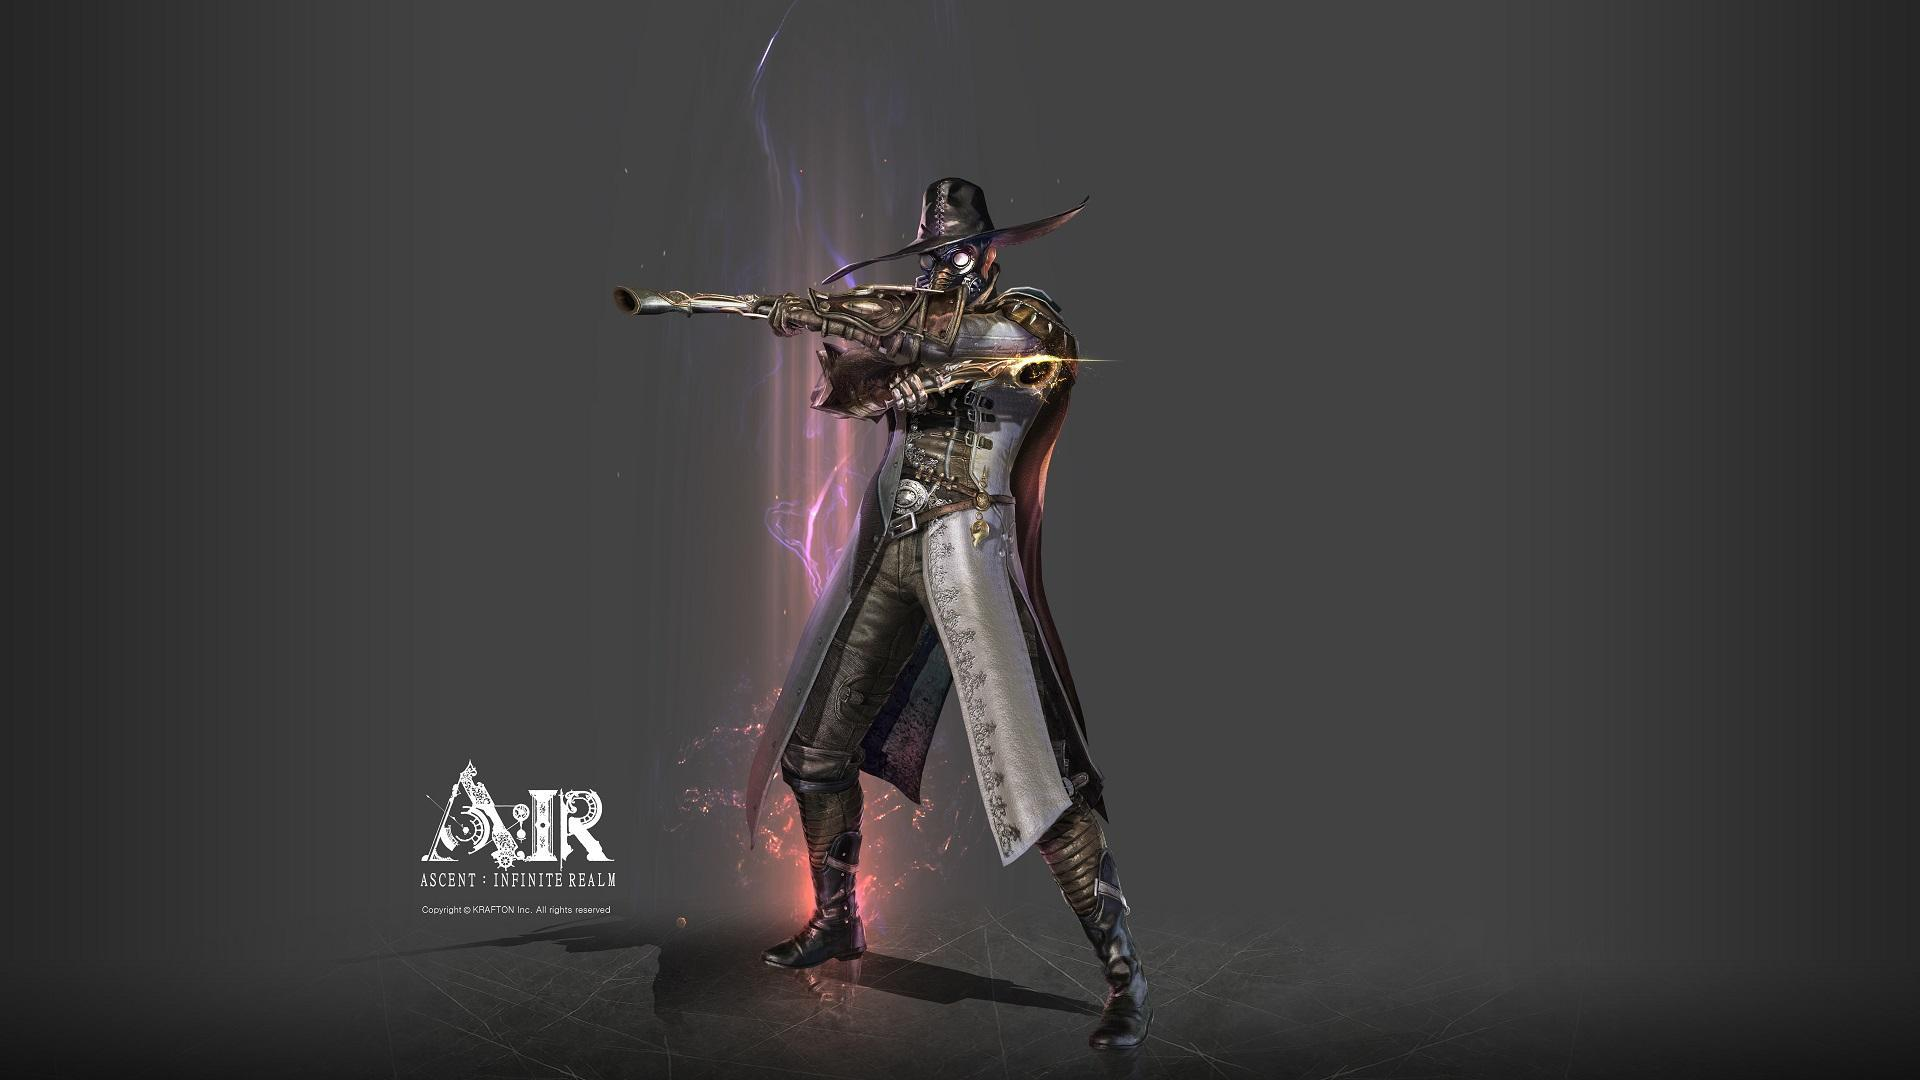 Ascent: Infinite Realm classes Gunslinger